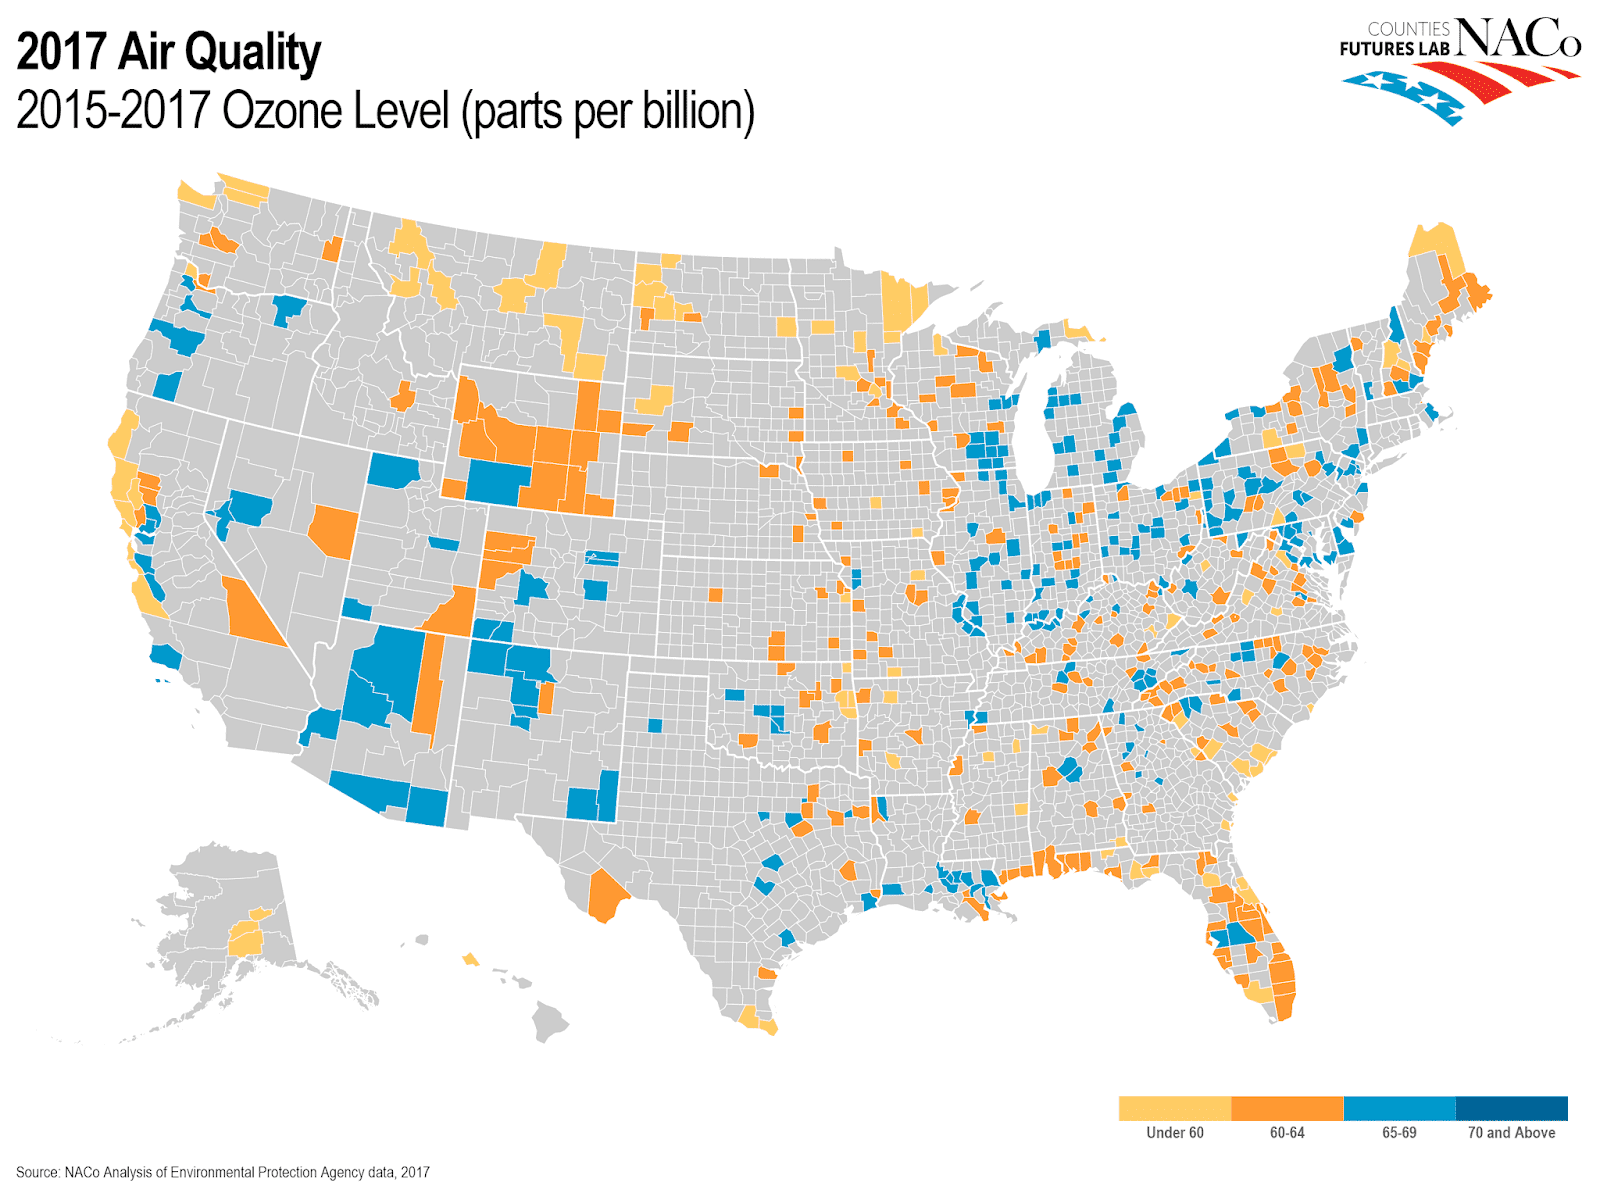 Geofact Of The Day Map Of Air Quality And Ozone Levels In The Us - Air-quality-map-of-us